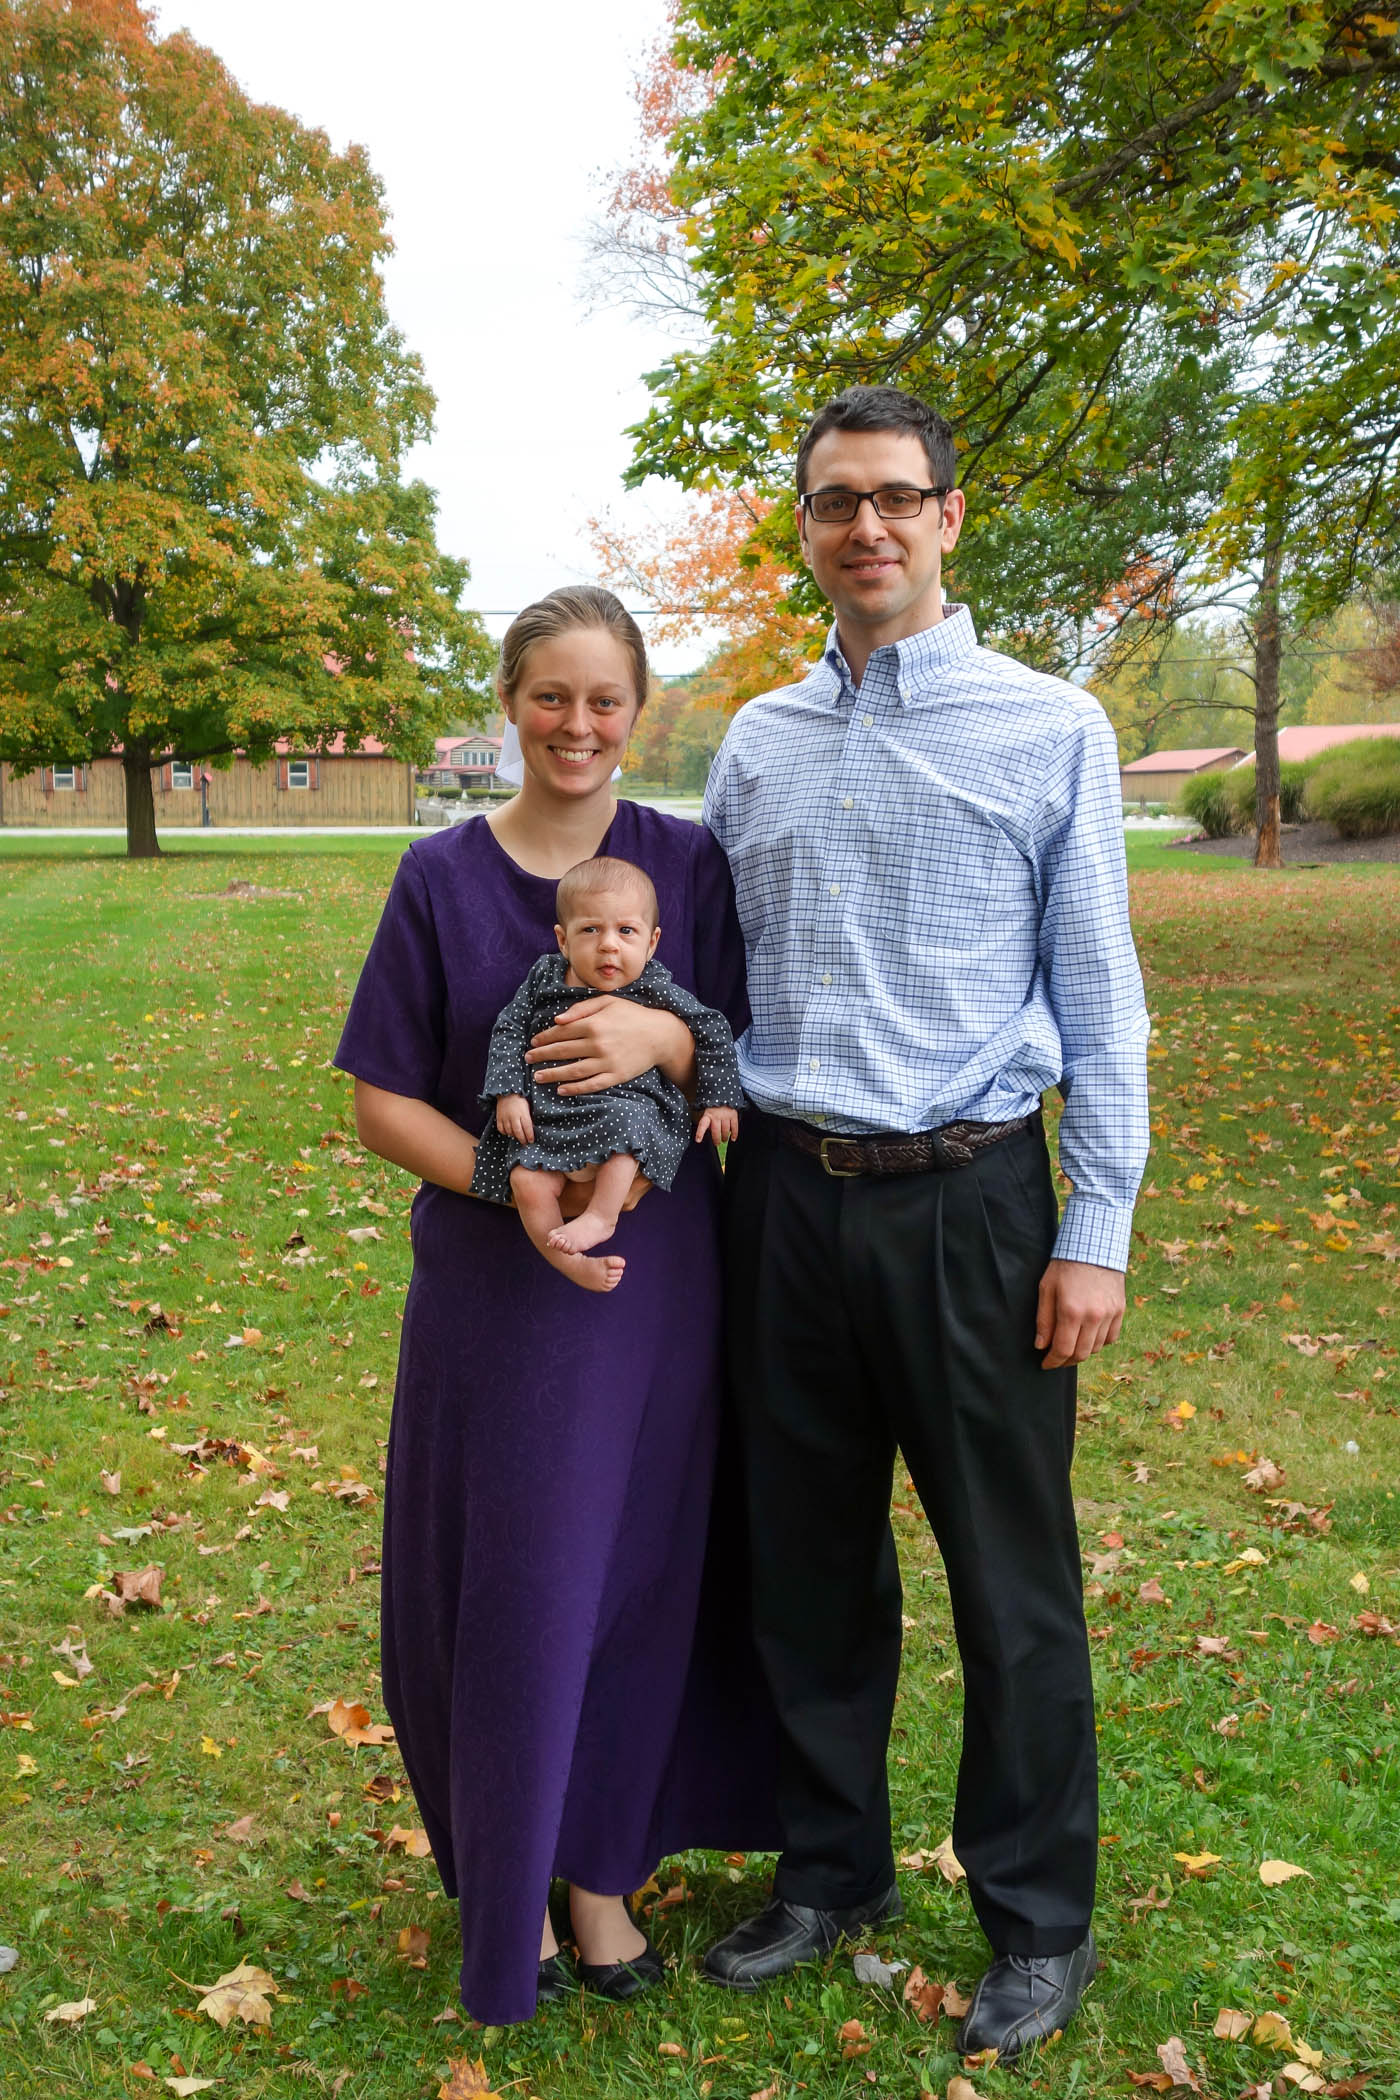 This is a picture of Ryan, Briana, and Hadassah standing outside on the grass with trees in the background. The trees are just starting to get some yellow leaves. Briana is wearing a royal purple dress, and Hadassah has a quirky expression on her face.